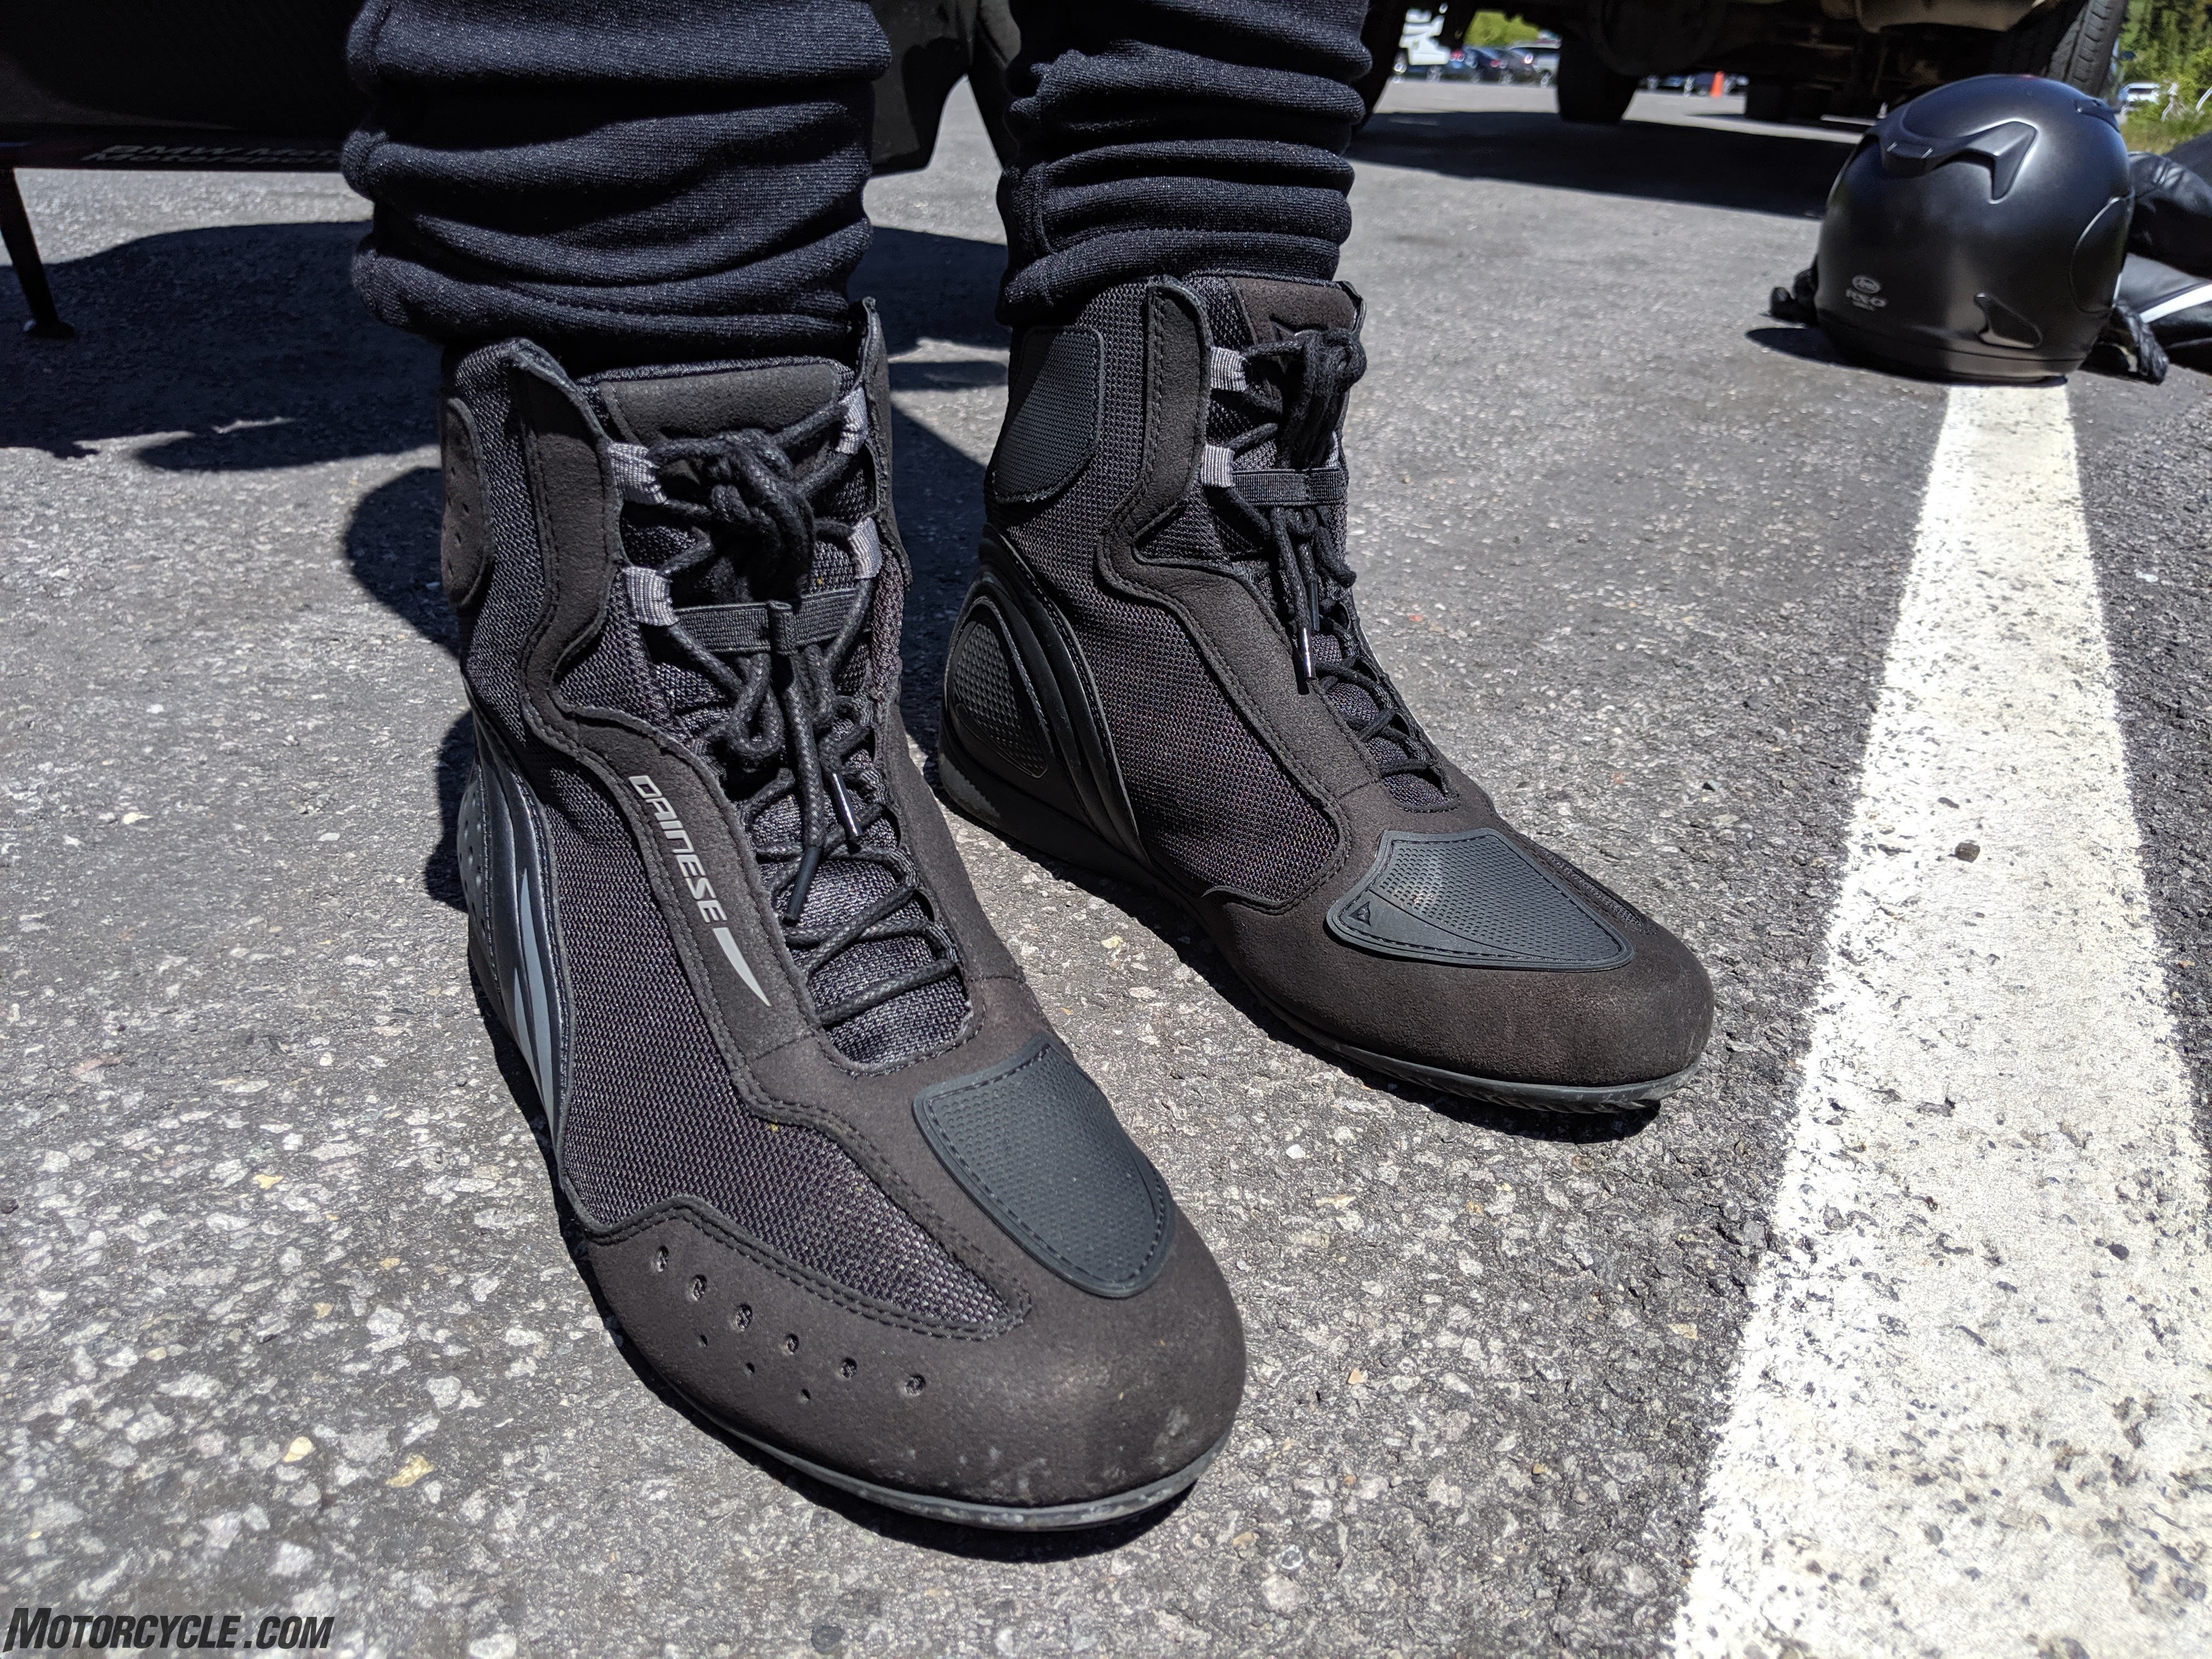 Women's Gear Review: Dainese Sport Boots and Shoes